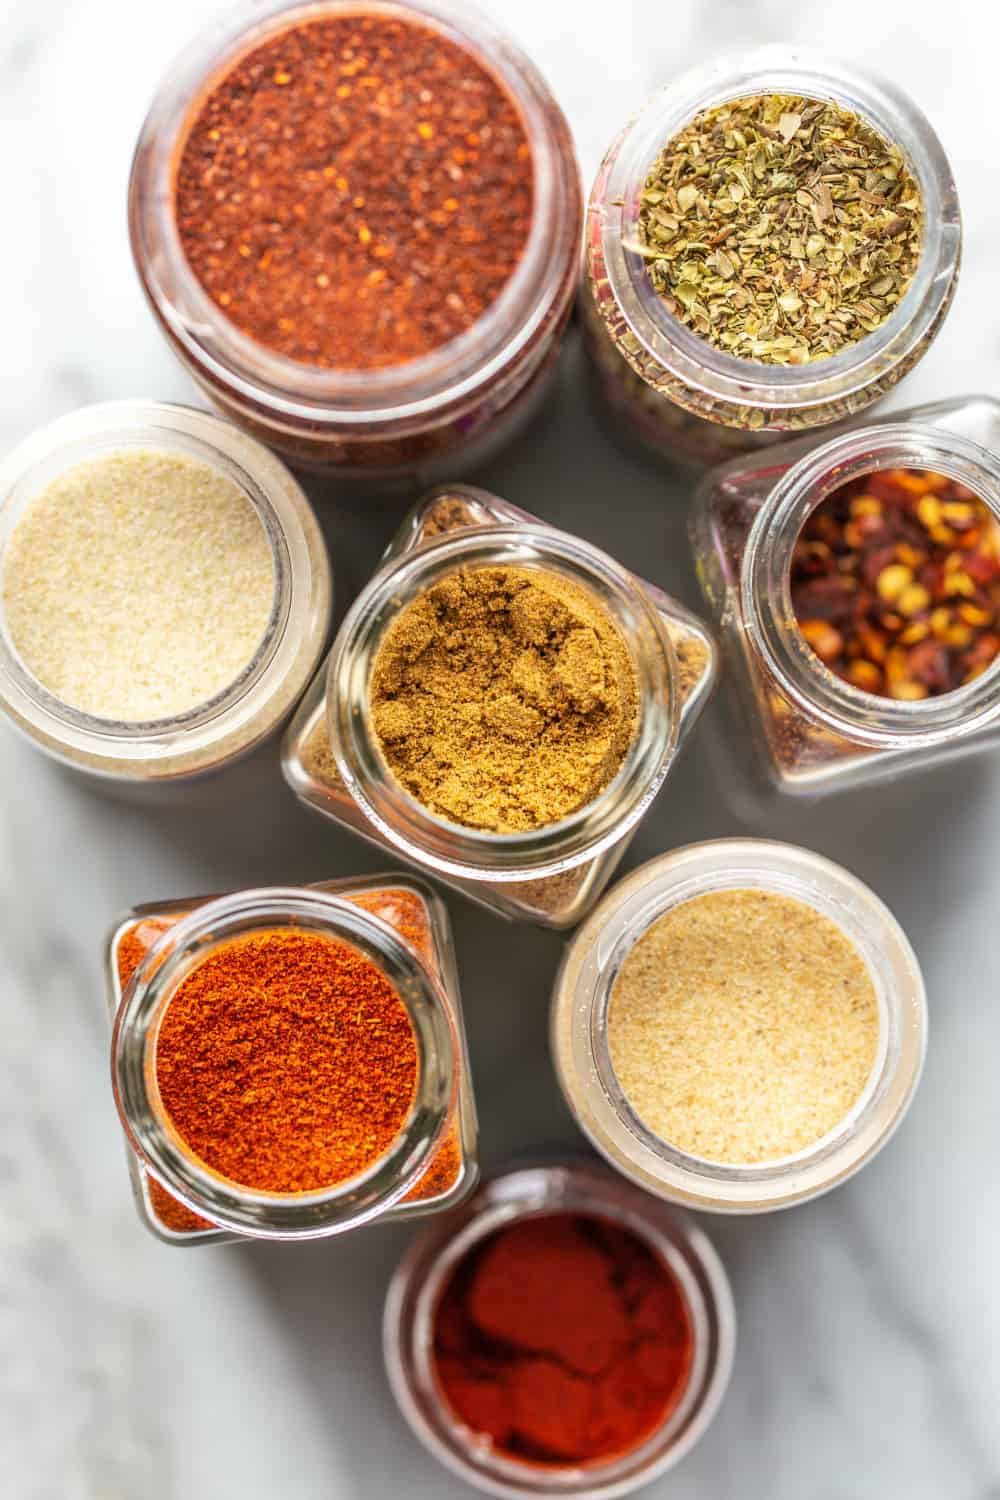 Overhead view of open spice jars for chili seasoning on marble surface